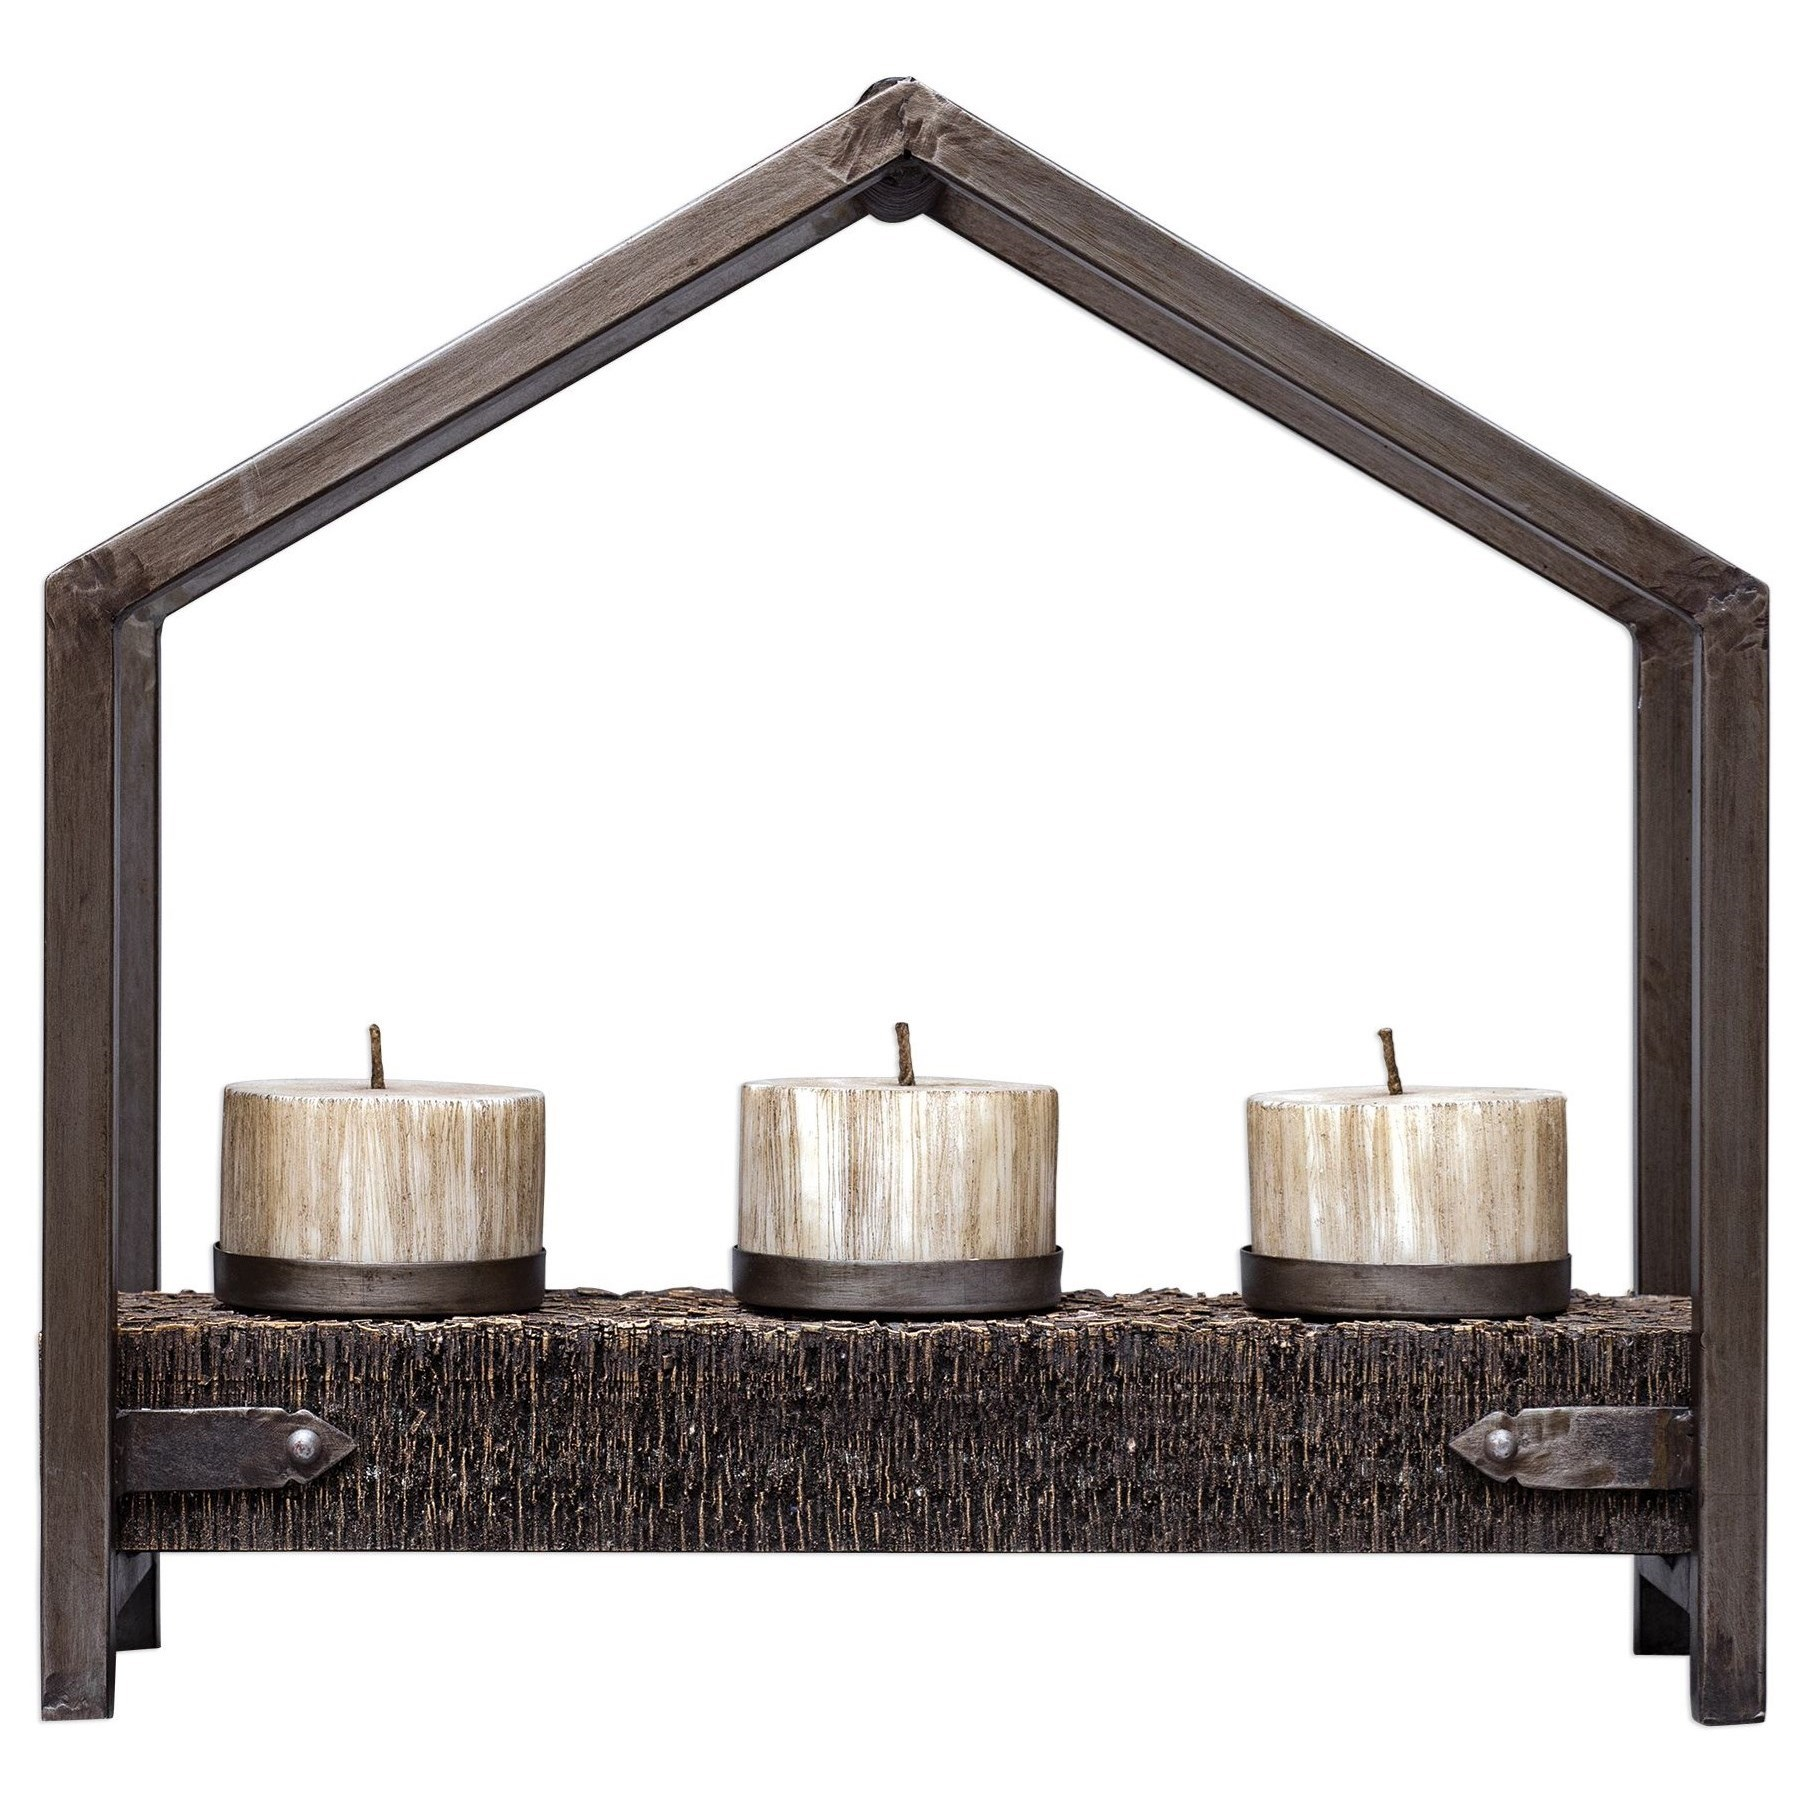 Accessories - Candle Holders Ellie Antique Bronze Candleholder by Uttermost at Furniture and ApplianceMart